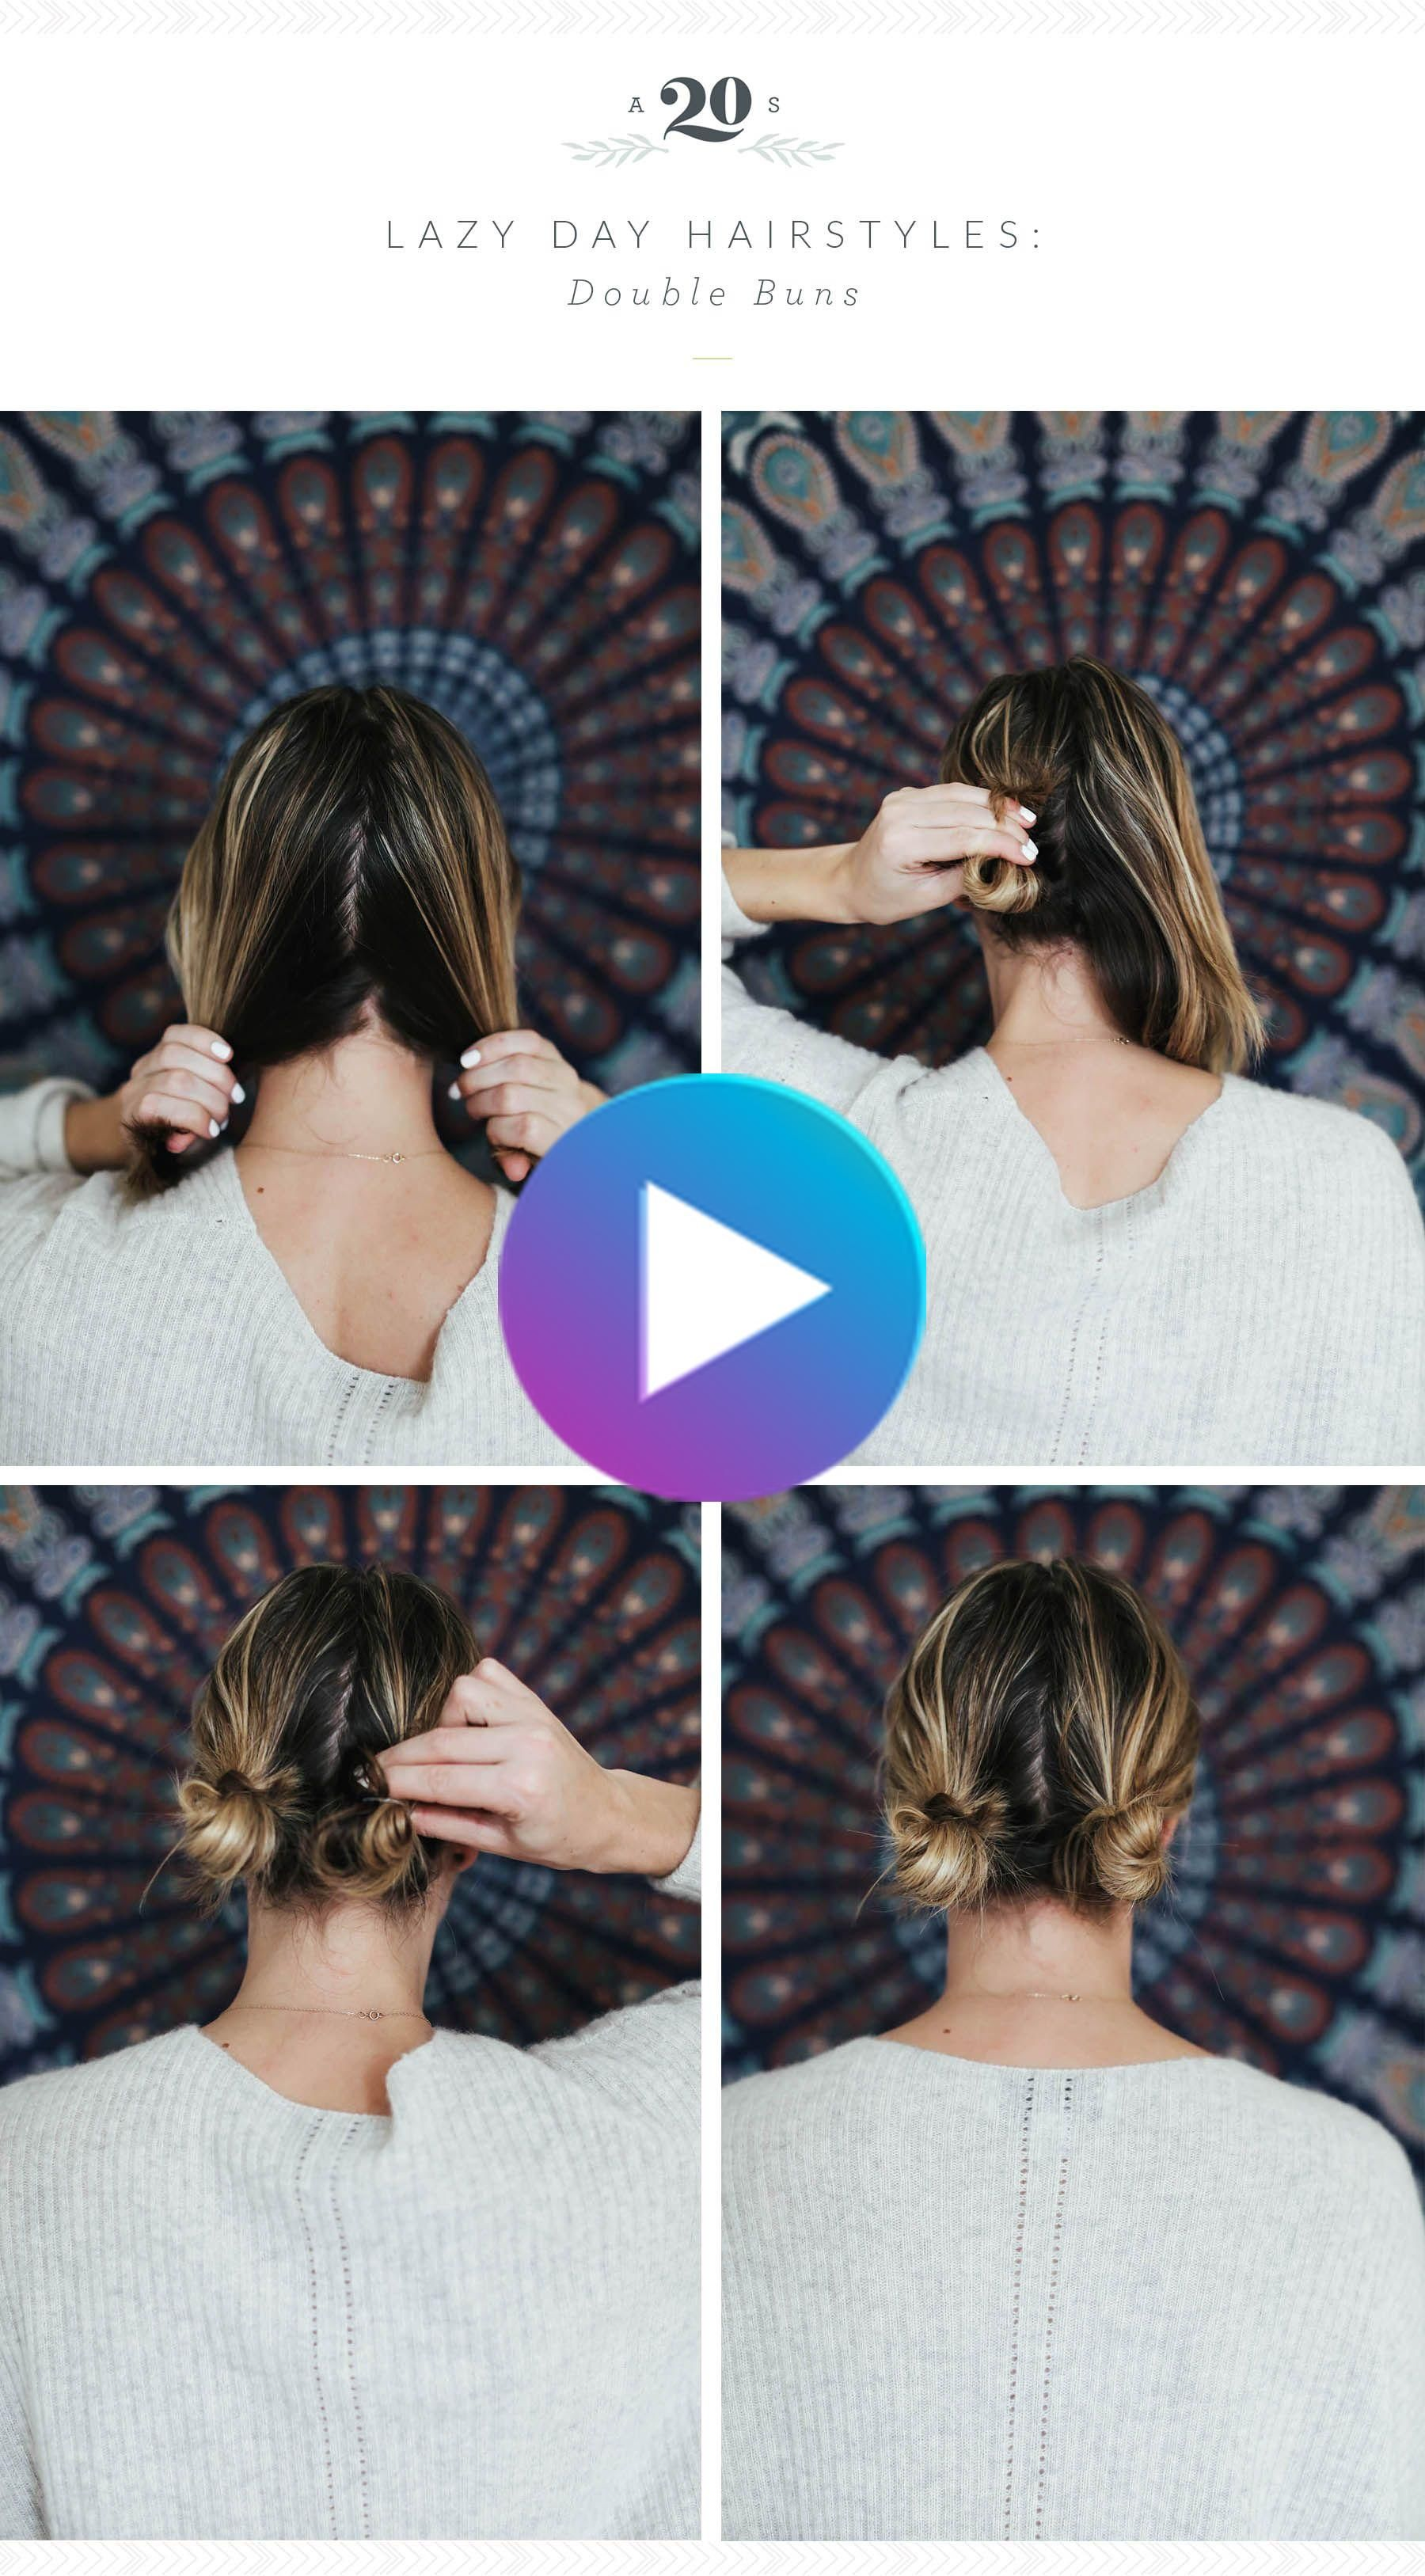 3 Easy Hairstyles For Lazy Days In 2020 Lazy Girl Hairstyles Cute Lazy Hairstyles Short Hair Styles Easy